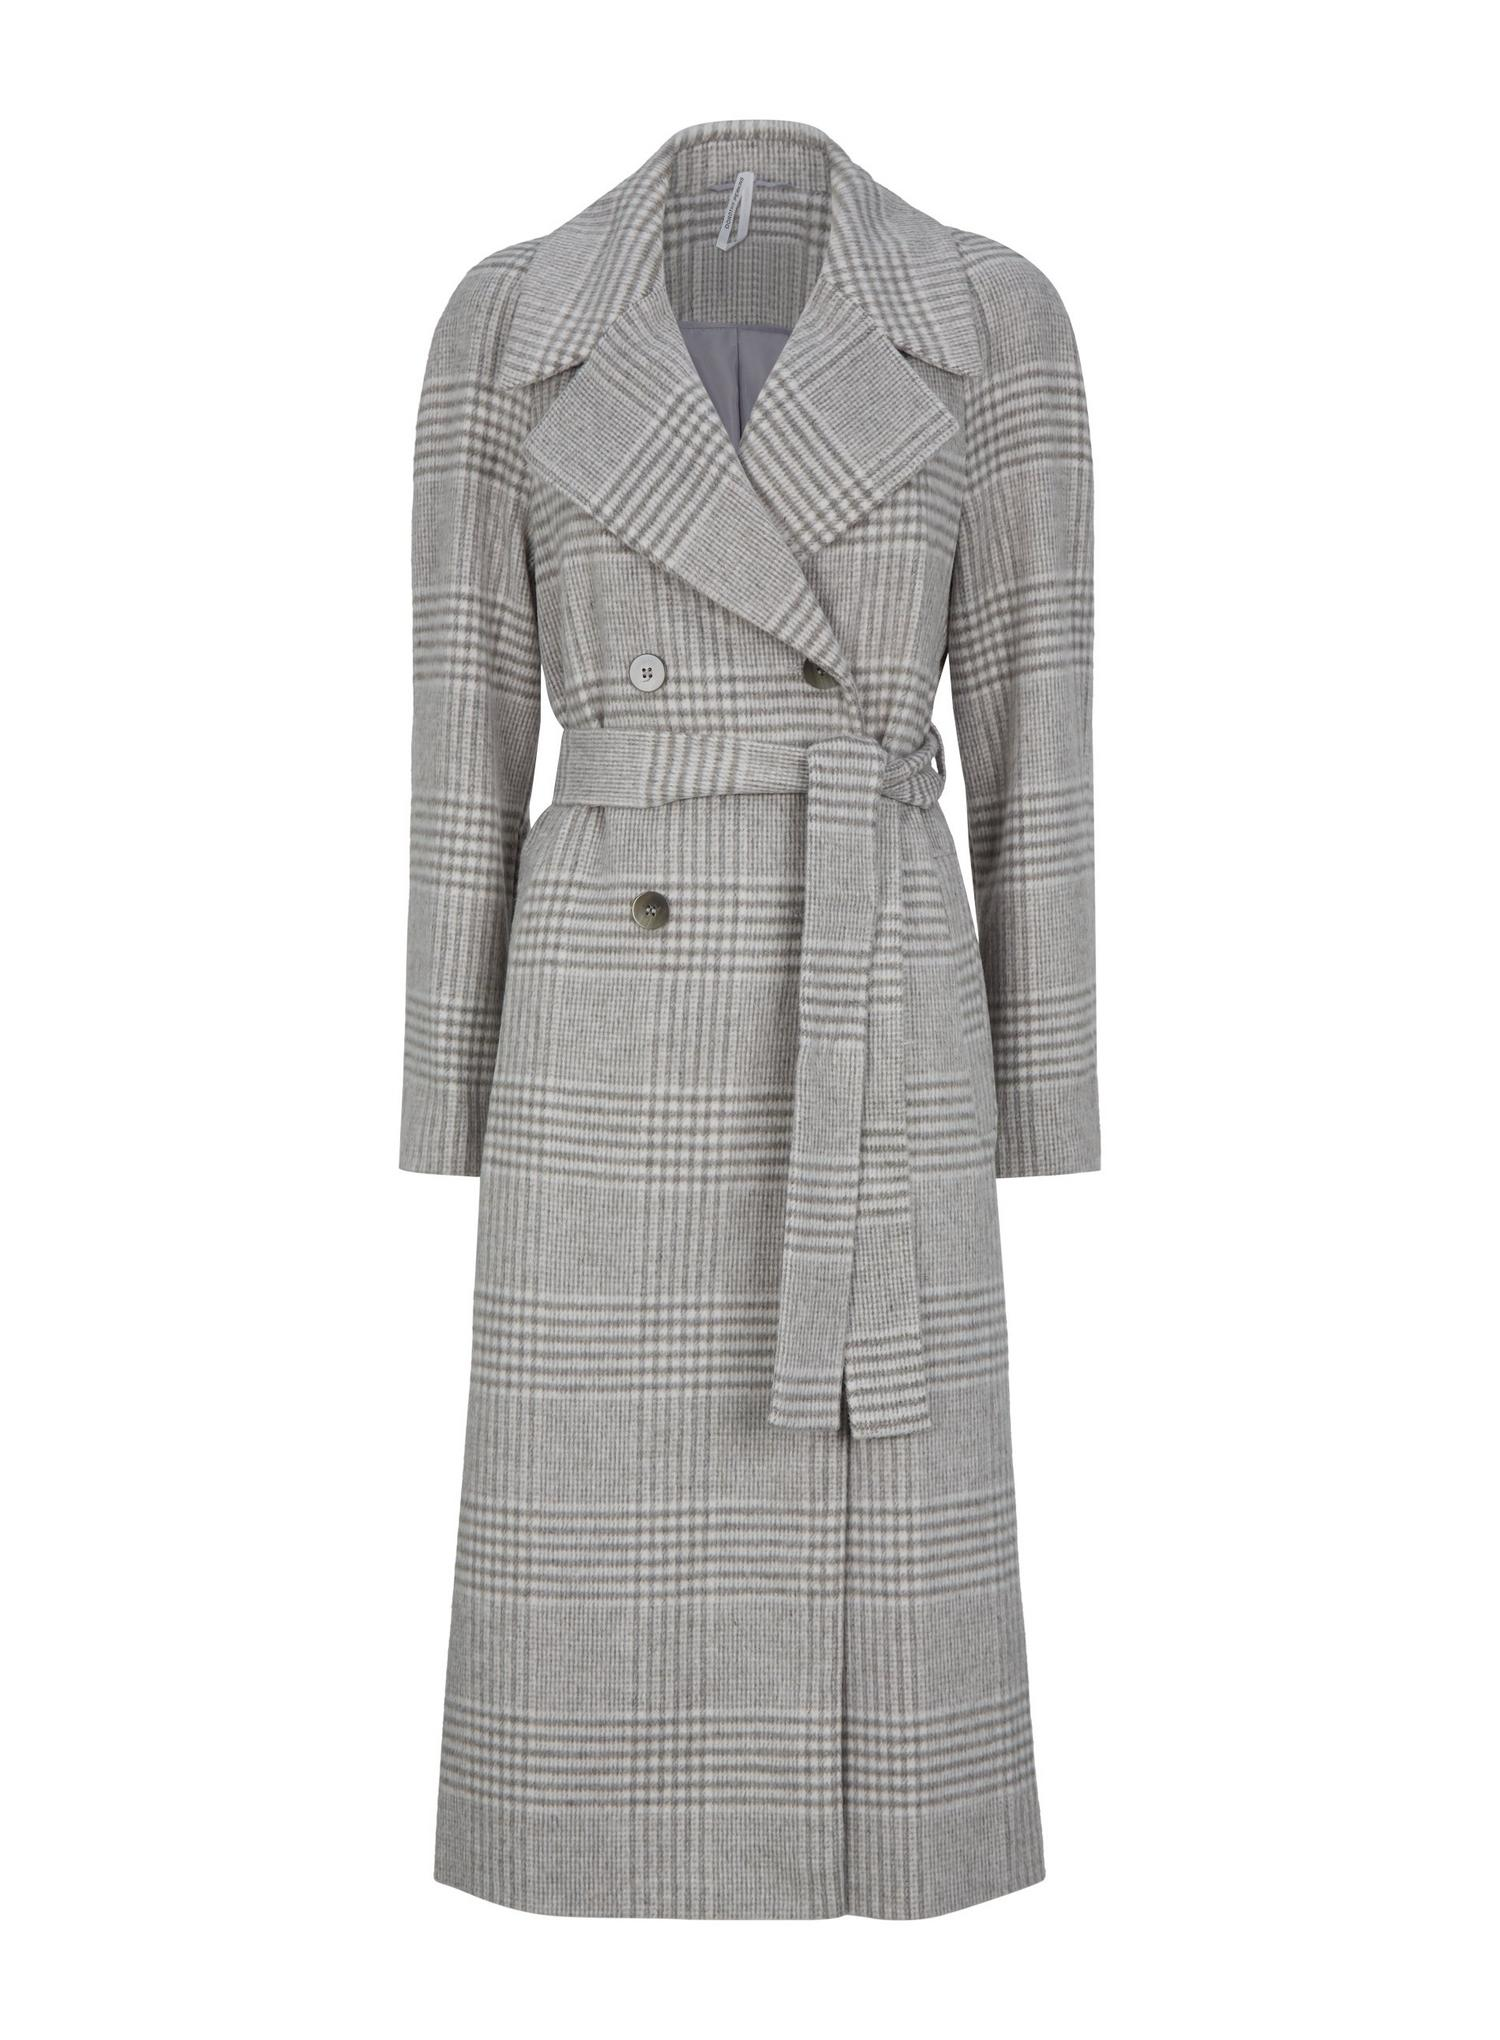 131 Check Double Breasted Wrap Maxi Coat image number 4